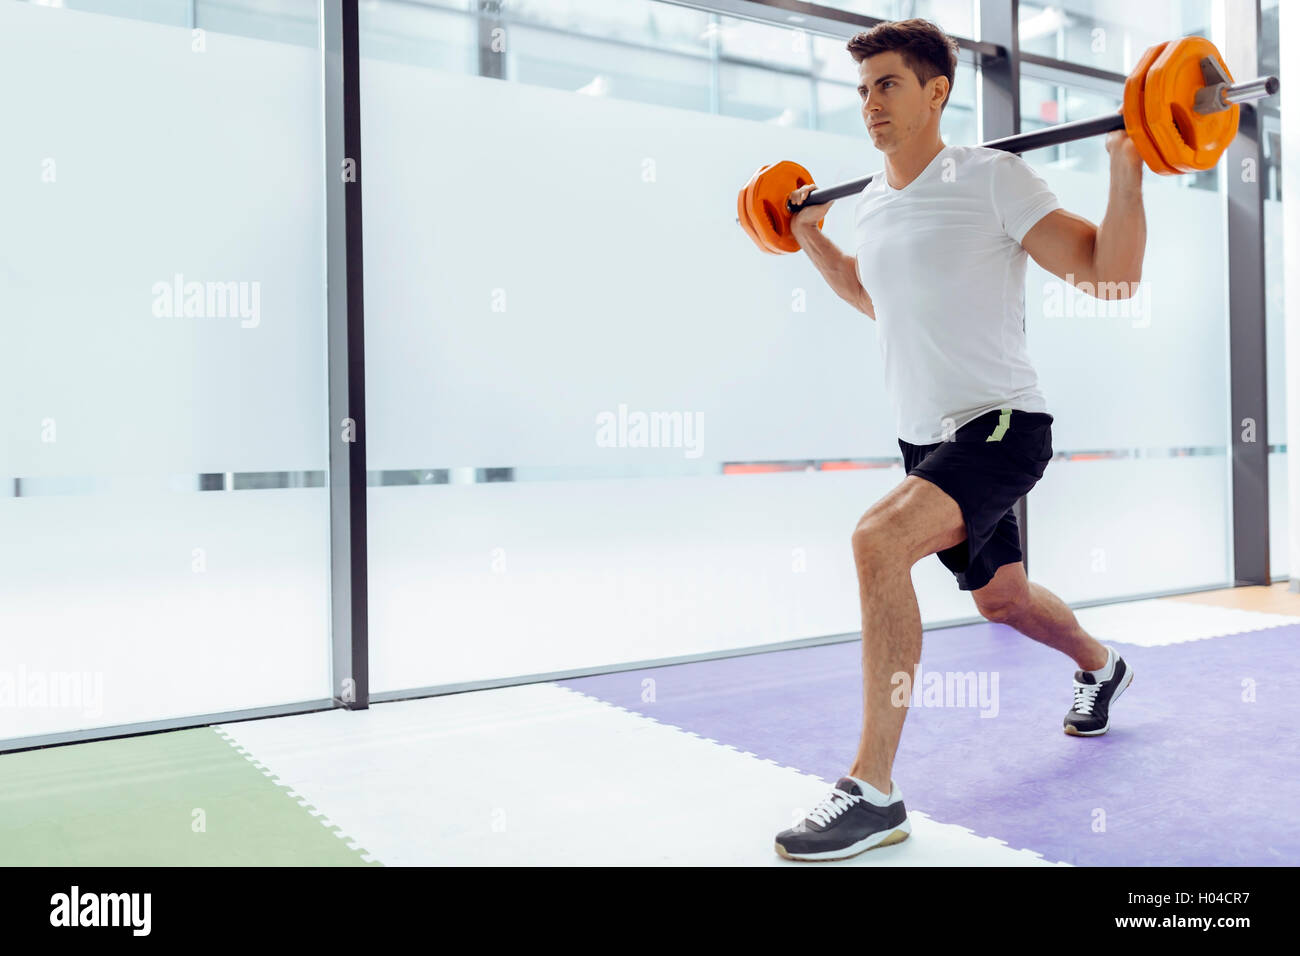 Handsome man exercising and lifting weights in fitness club - Stock Image